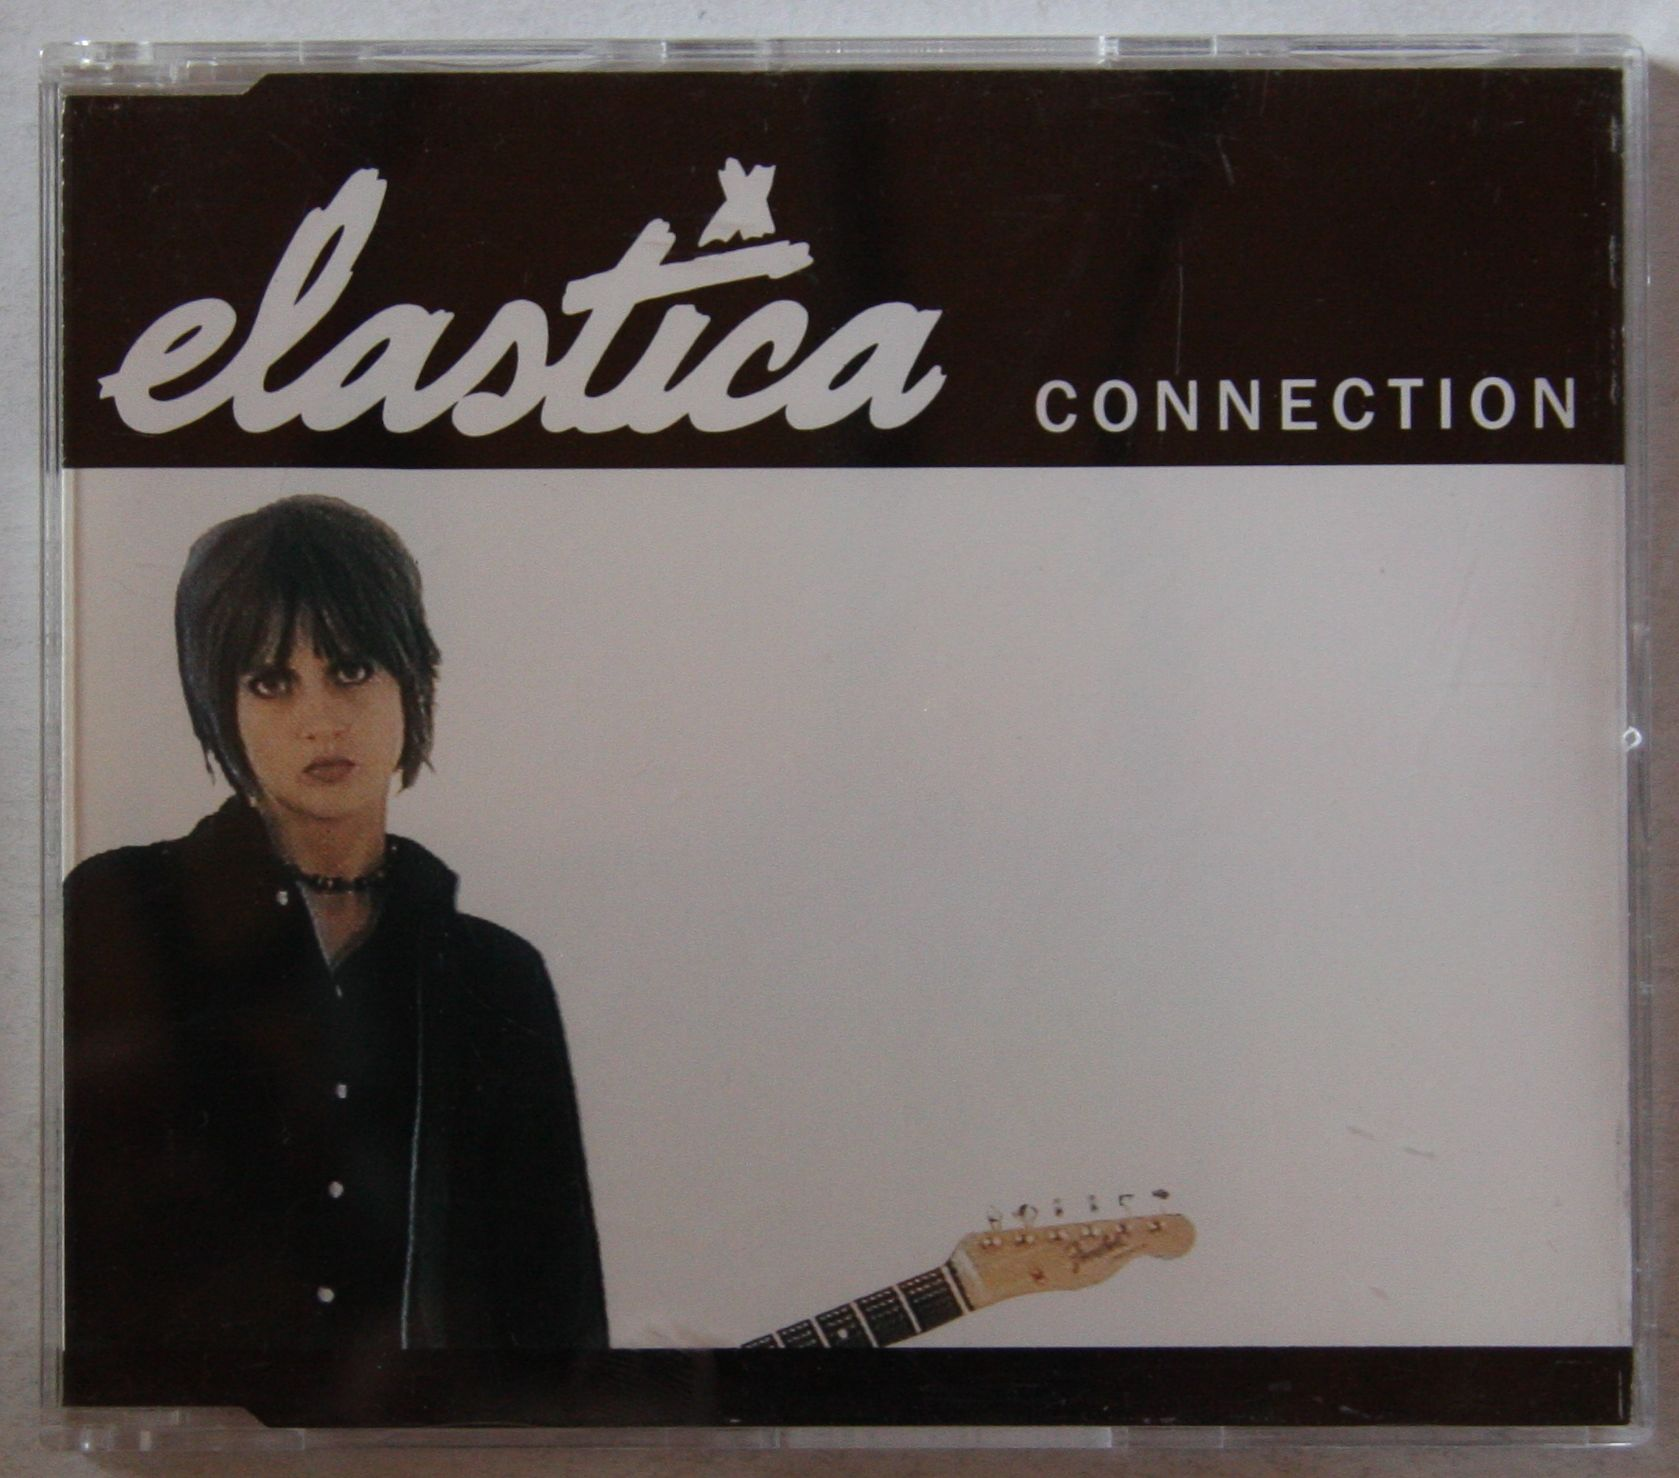 Elastica Connection Records, LPs, Vinyl and CDs - MusicStack